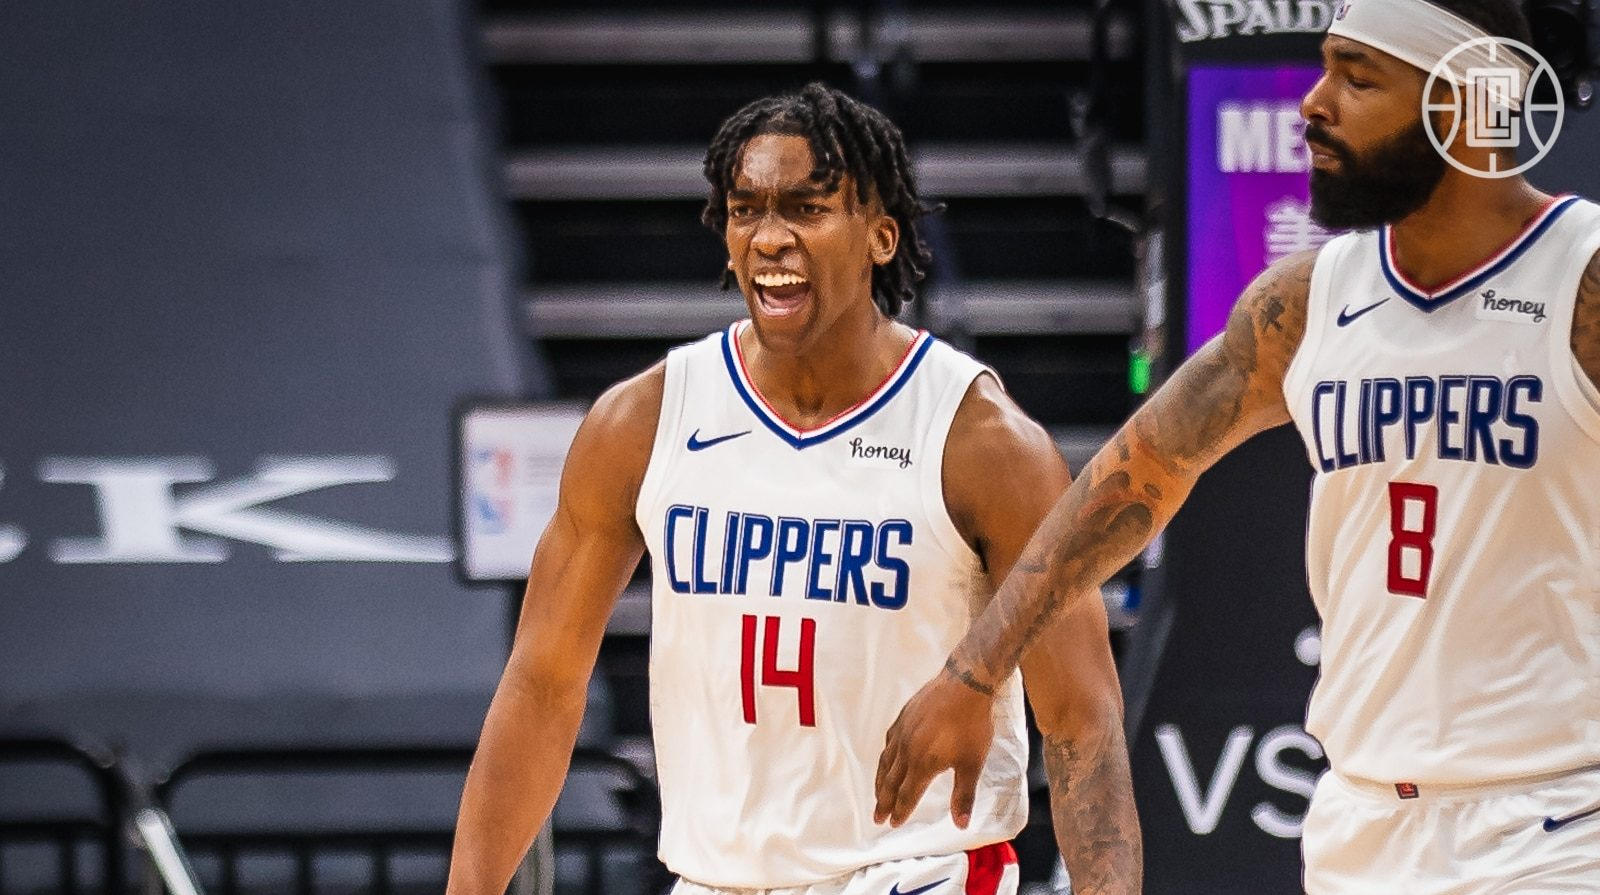 Clippers vs Wizards Preview: Going to the All Star Break